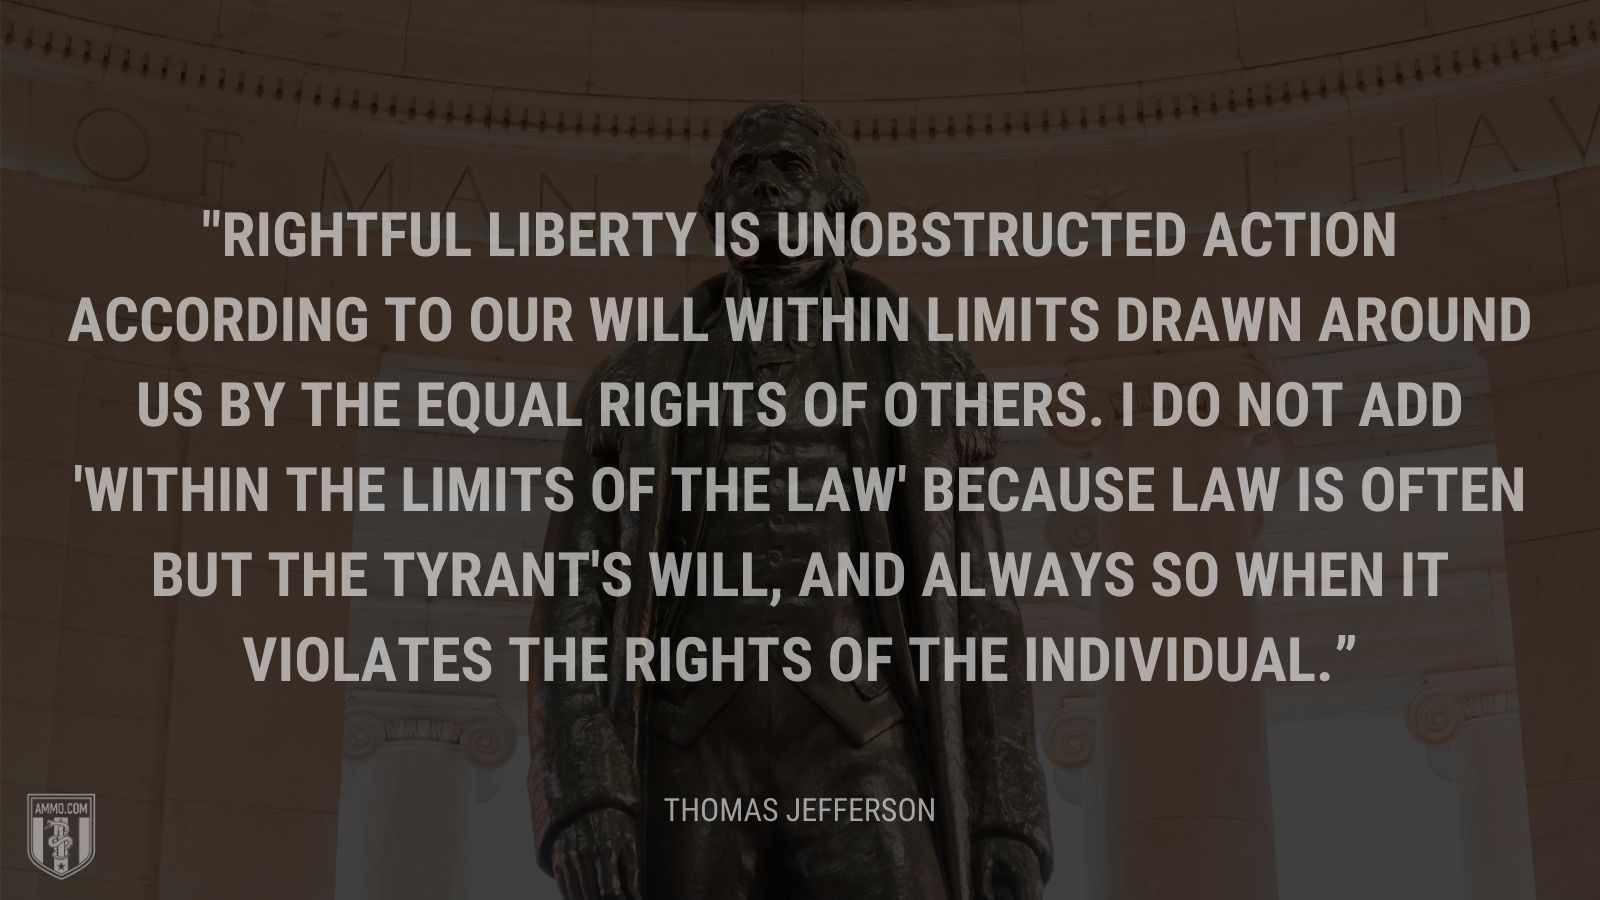 """Rightful liberty is unobstructed action according to our will within limits drawn around us by the equal rights of others. I do not add 'within the limits of the law' because law is often but the tyrant's will, and always so when it violates the rights of the individual."" - Thomas Jefferson"